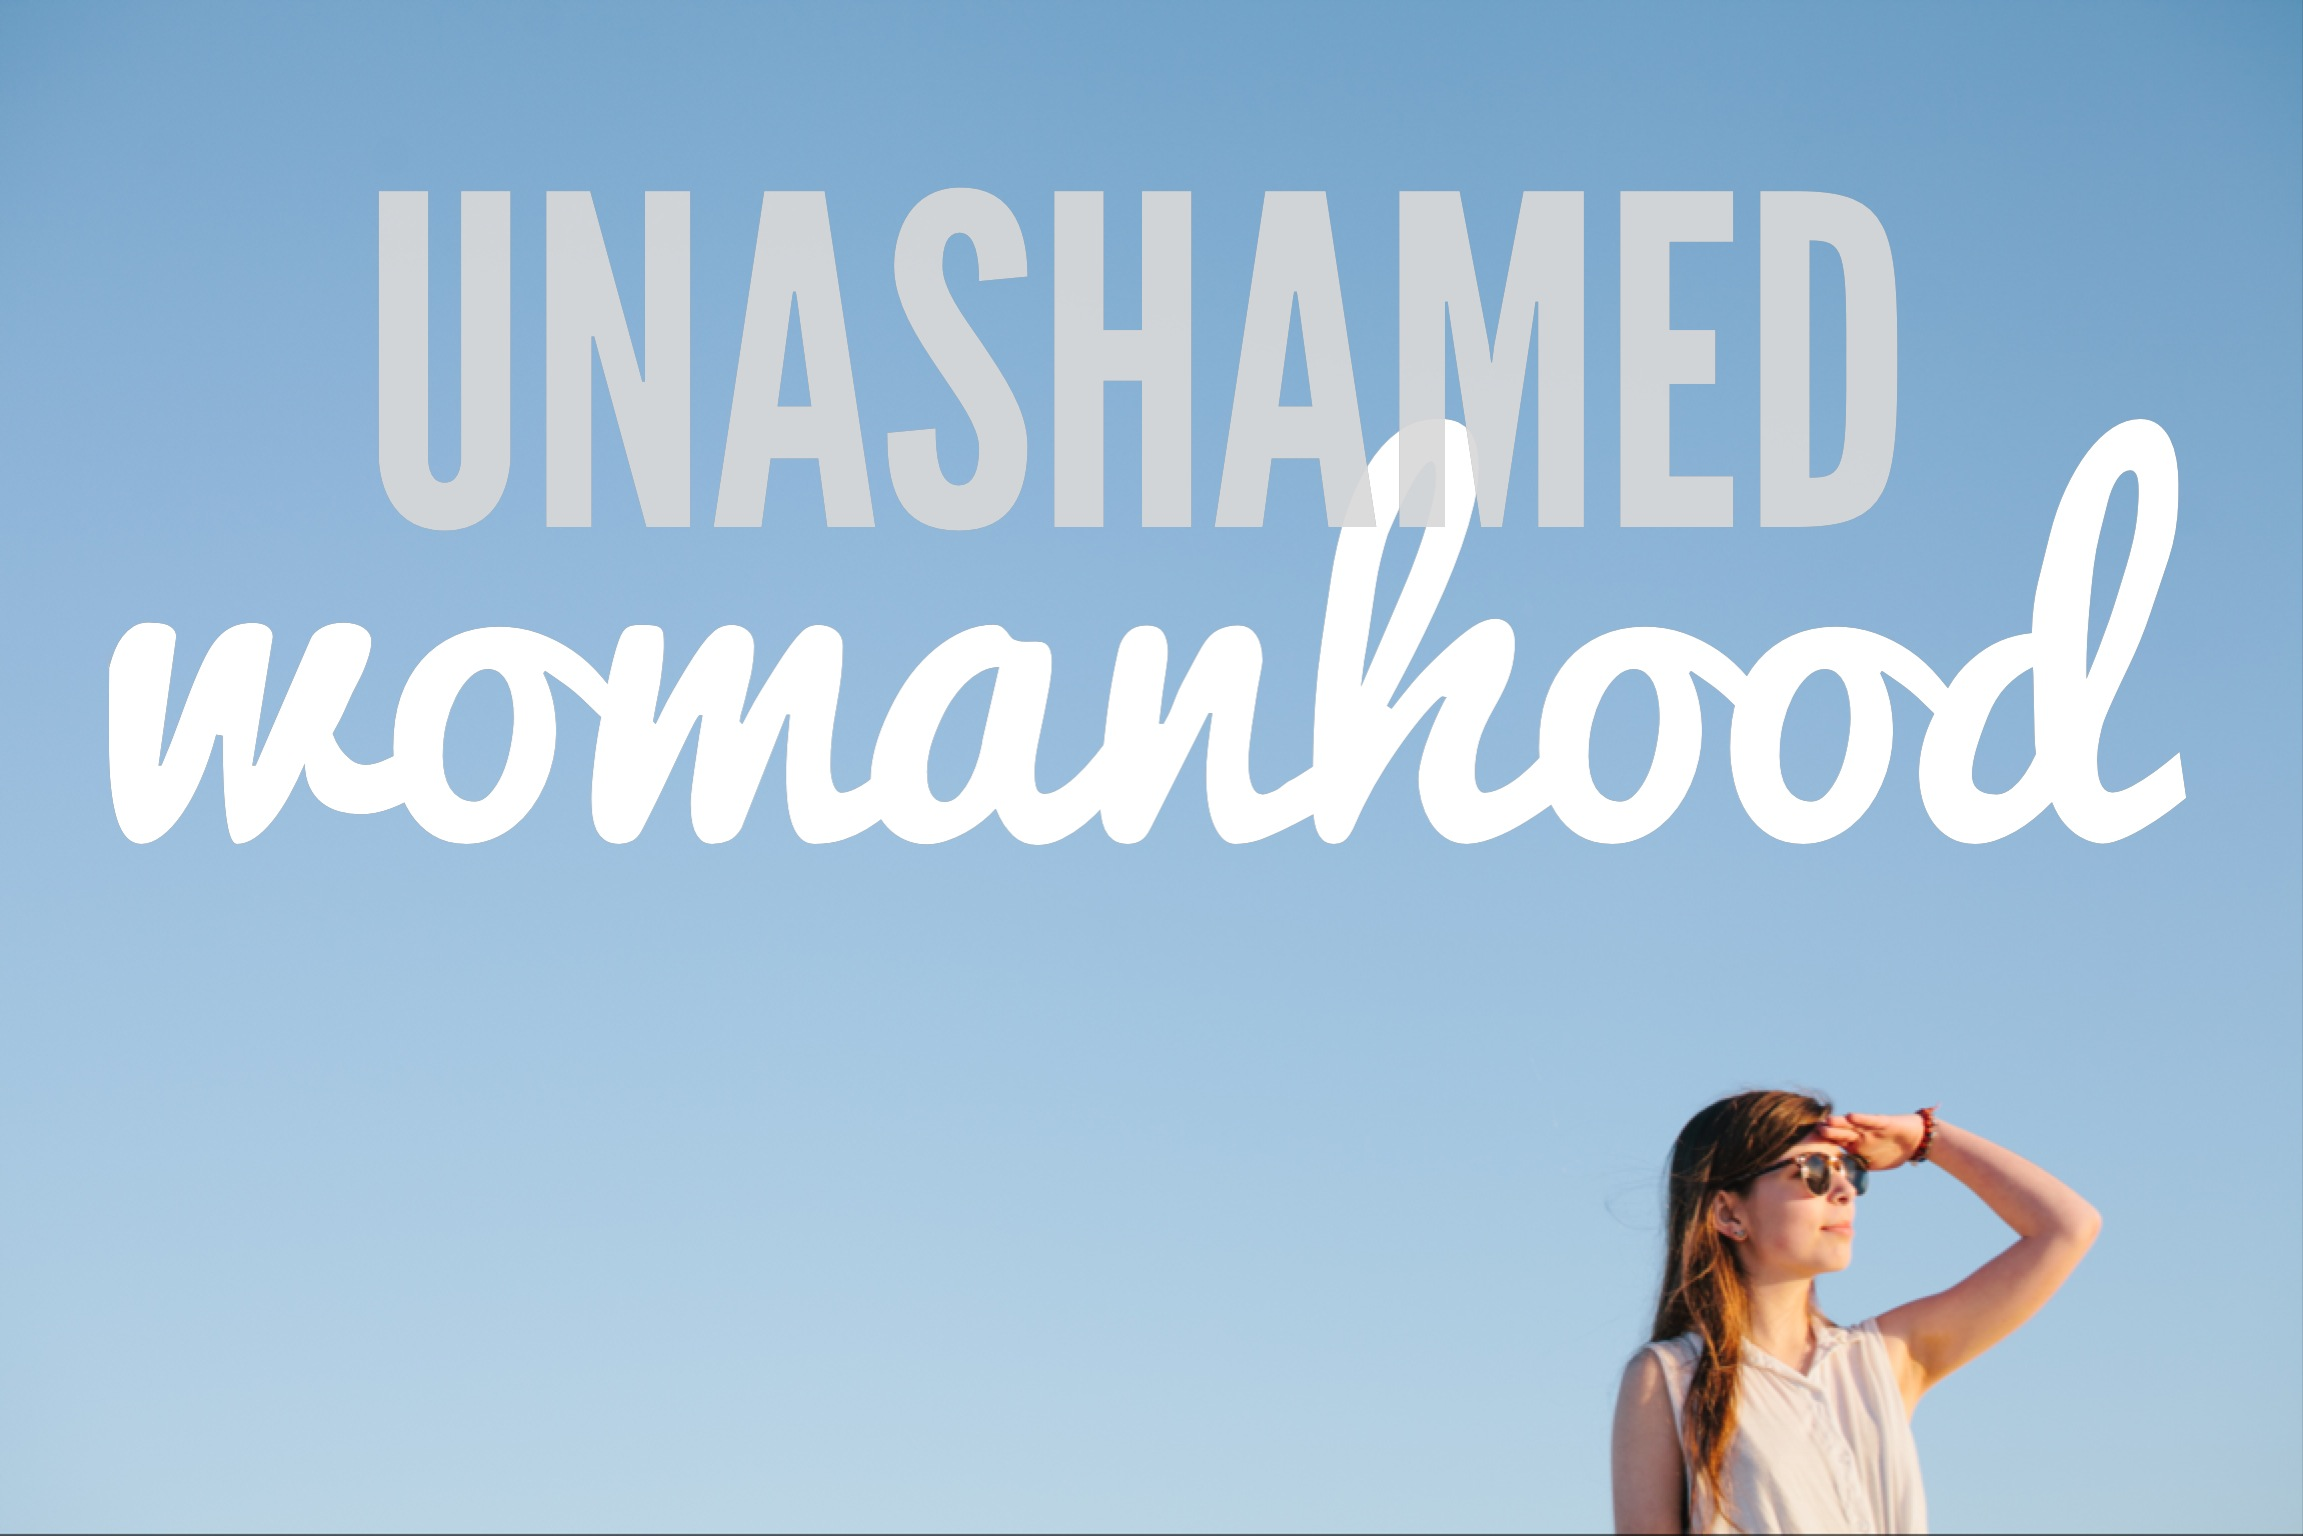 Unashamed Womanhood